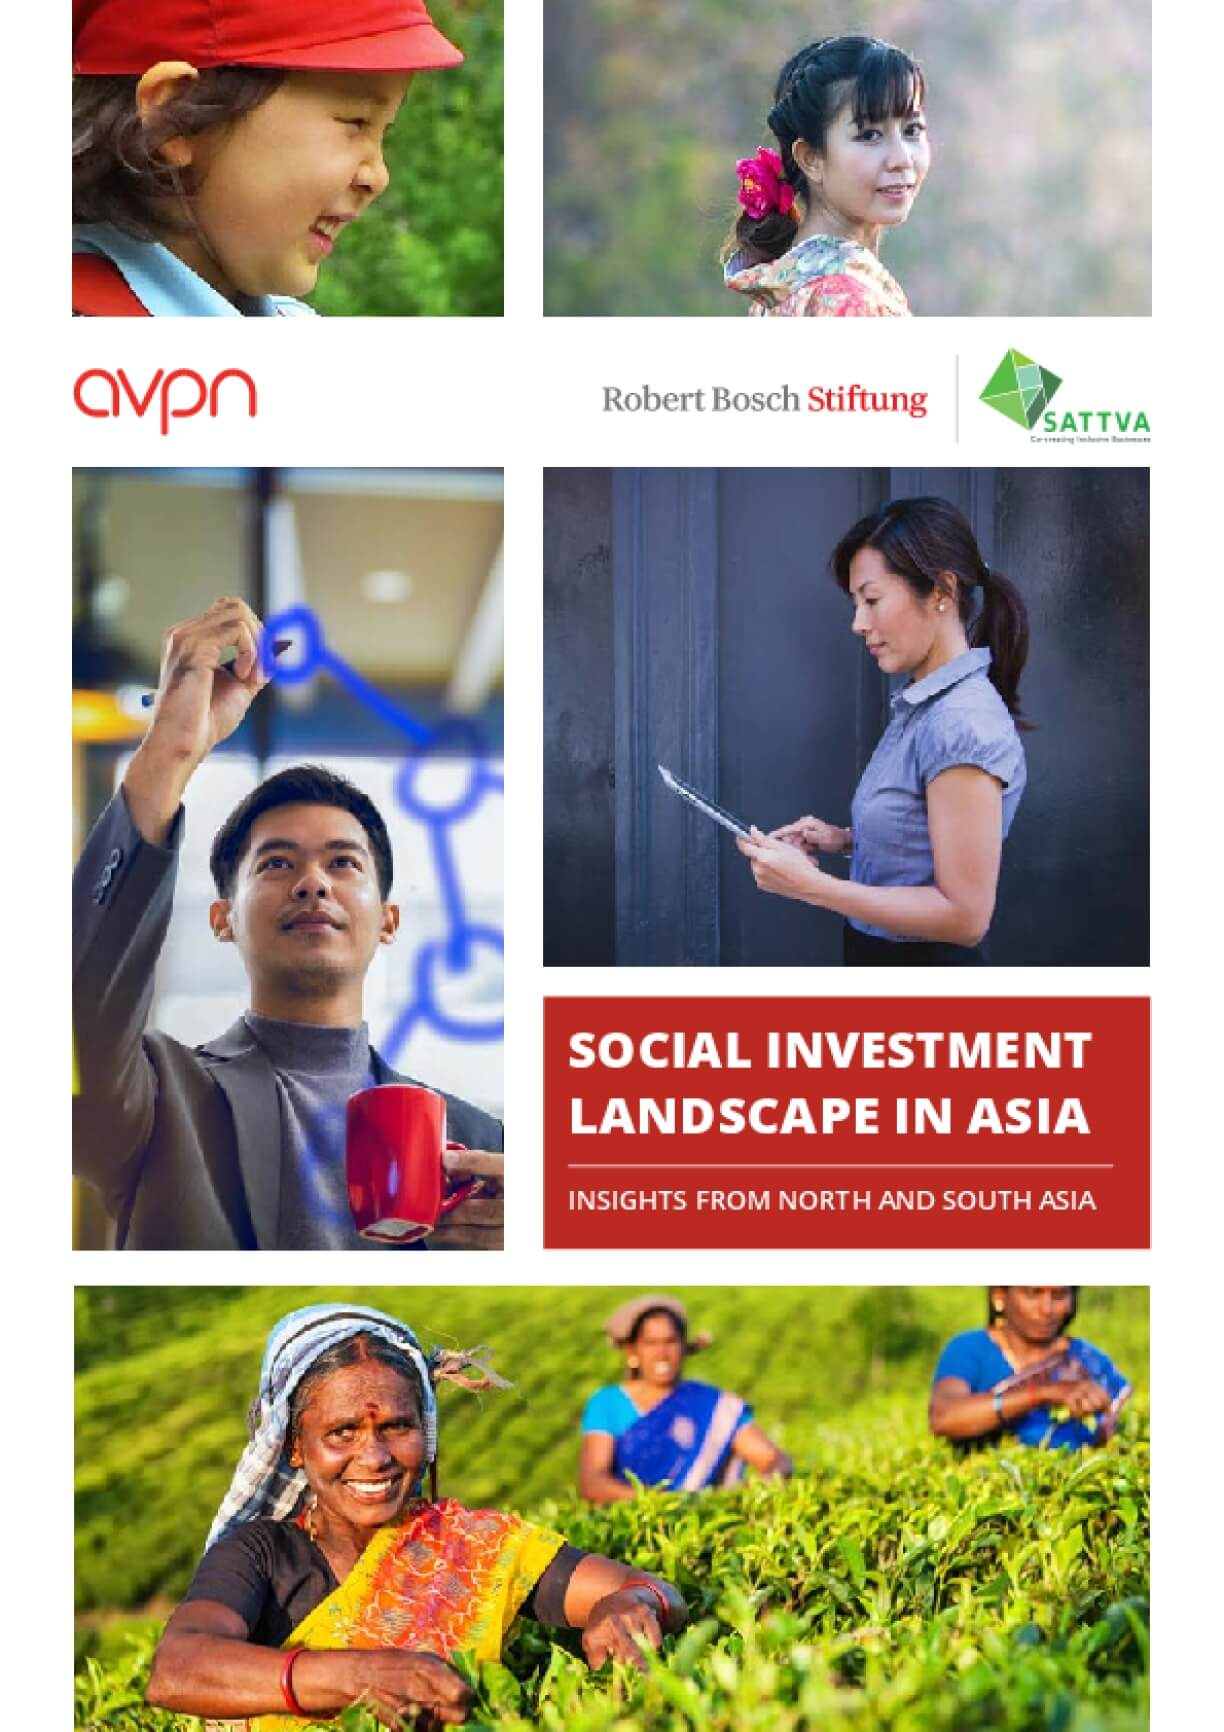 Social Investment Landscape in Asia: Insights from North and South Asia